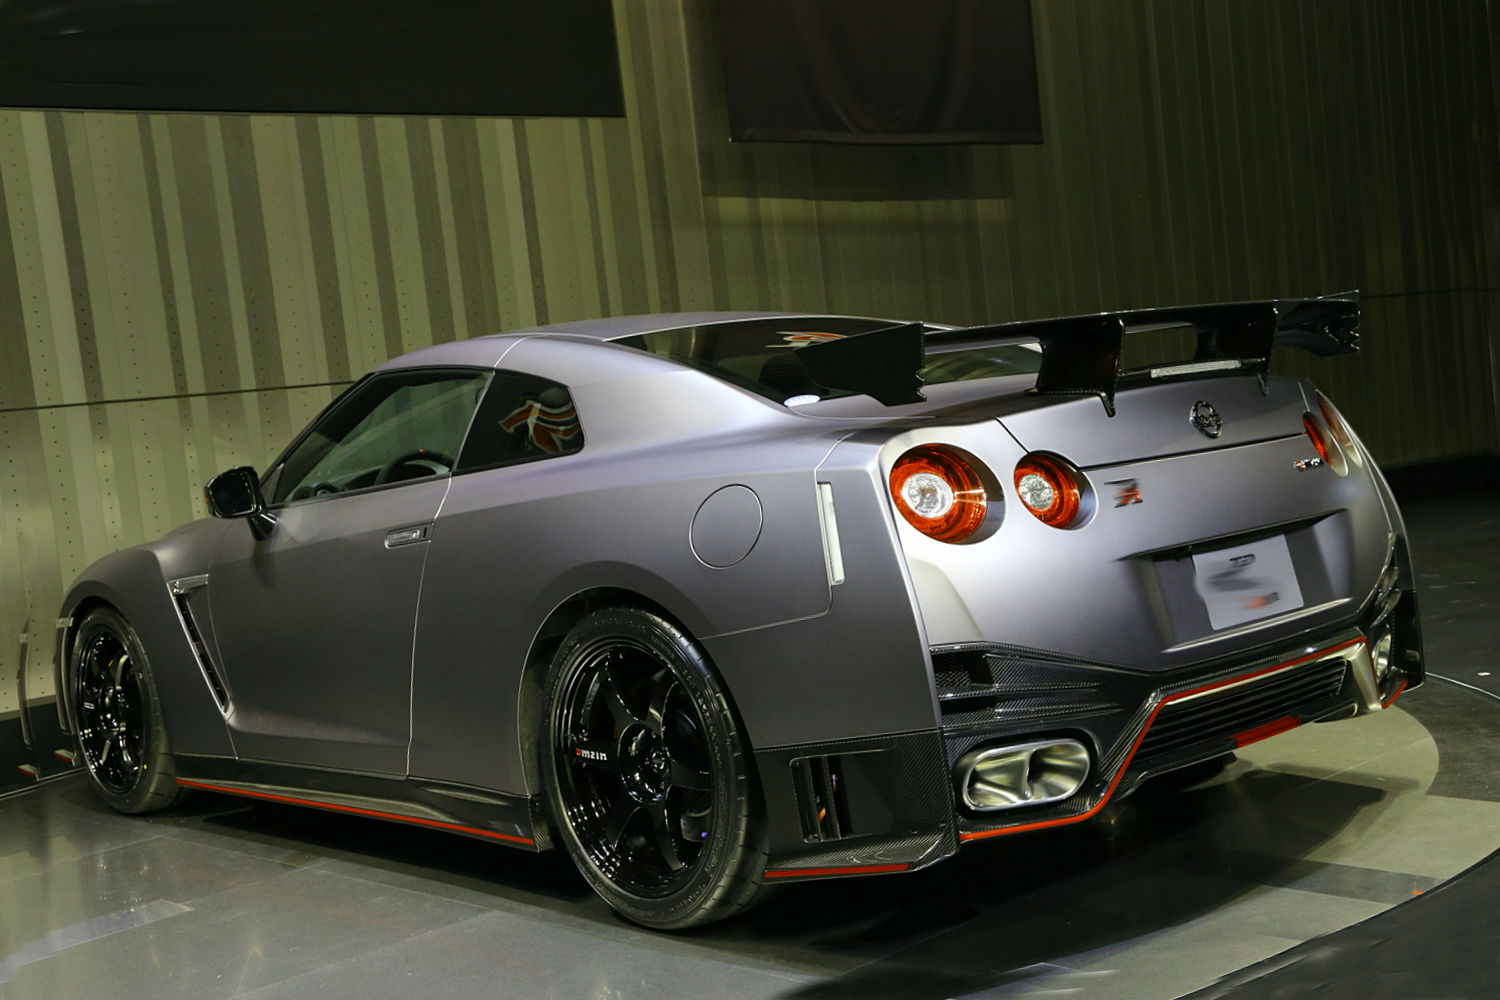 2015 nissan gt r nismo price car interior design. Black Bedroom Furniture Sets. Home Design Ideas